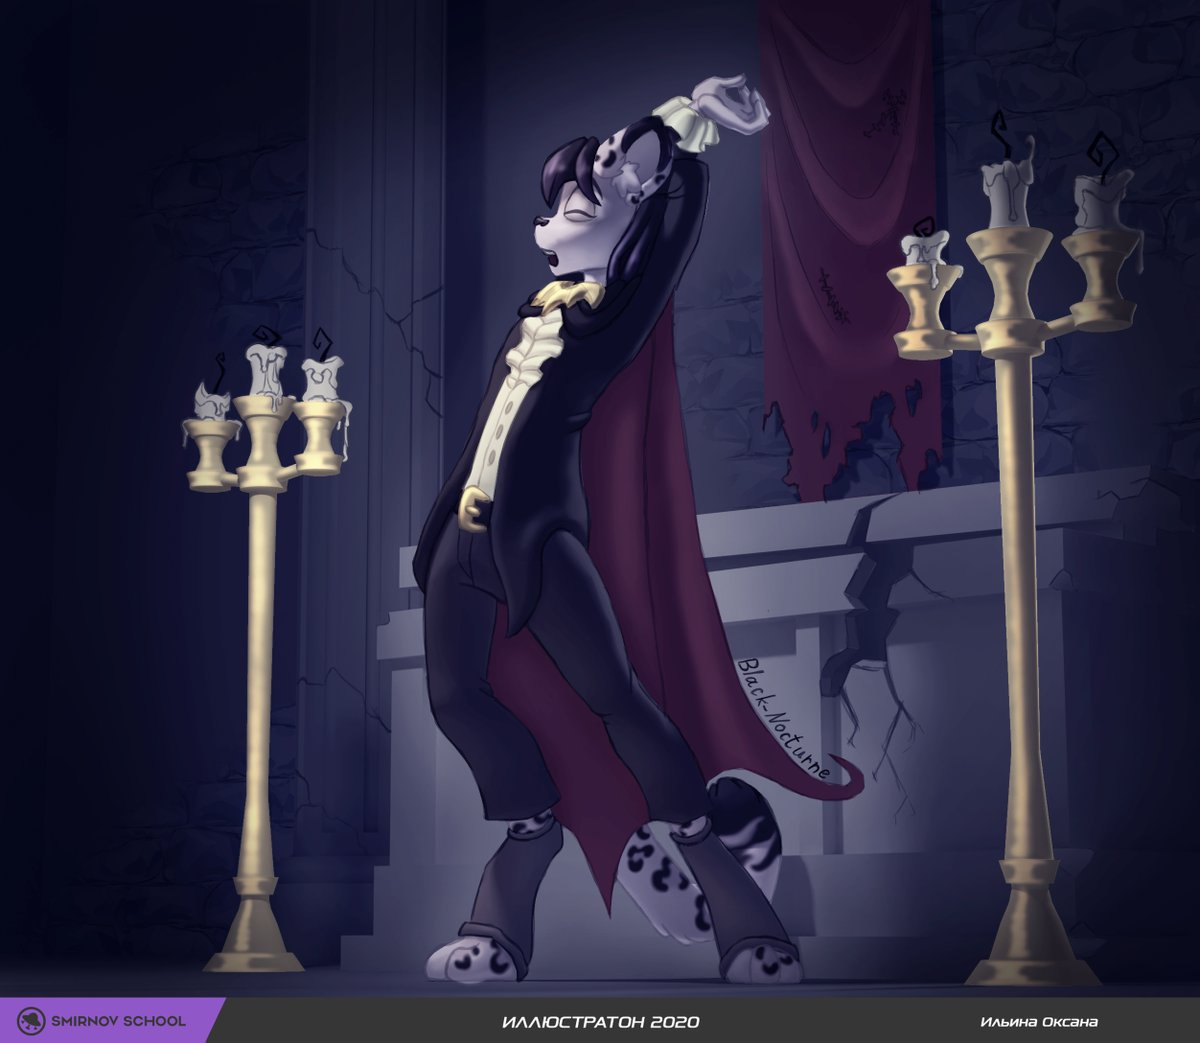 I did this during Illustrathon - an event from Smirnov School where we had only two days to create an illustration.  #illustrathon #smirnovschool #dimitris #leopard #snowleopard #anthro #vampire #tomb #crypt #candles #sarcophagus #candelabrum https://t.co/wYT4HPzbpp